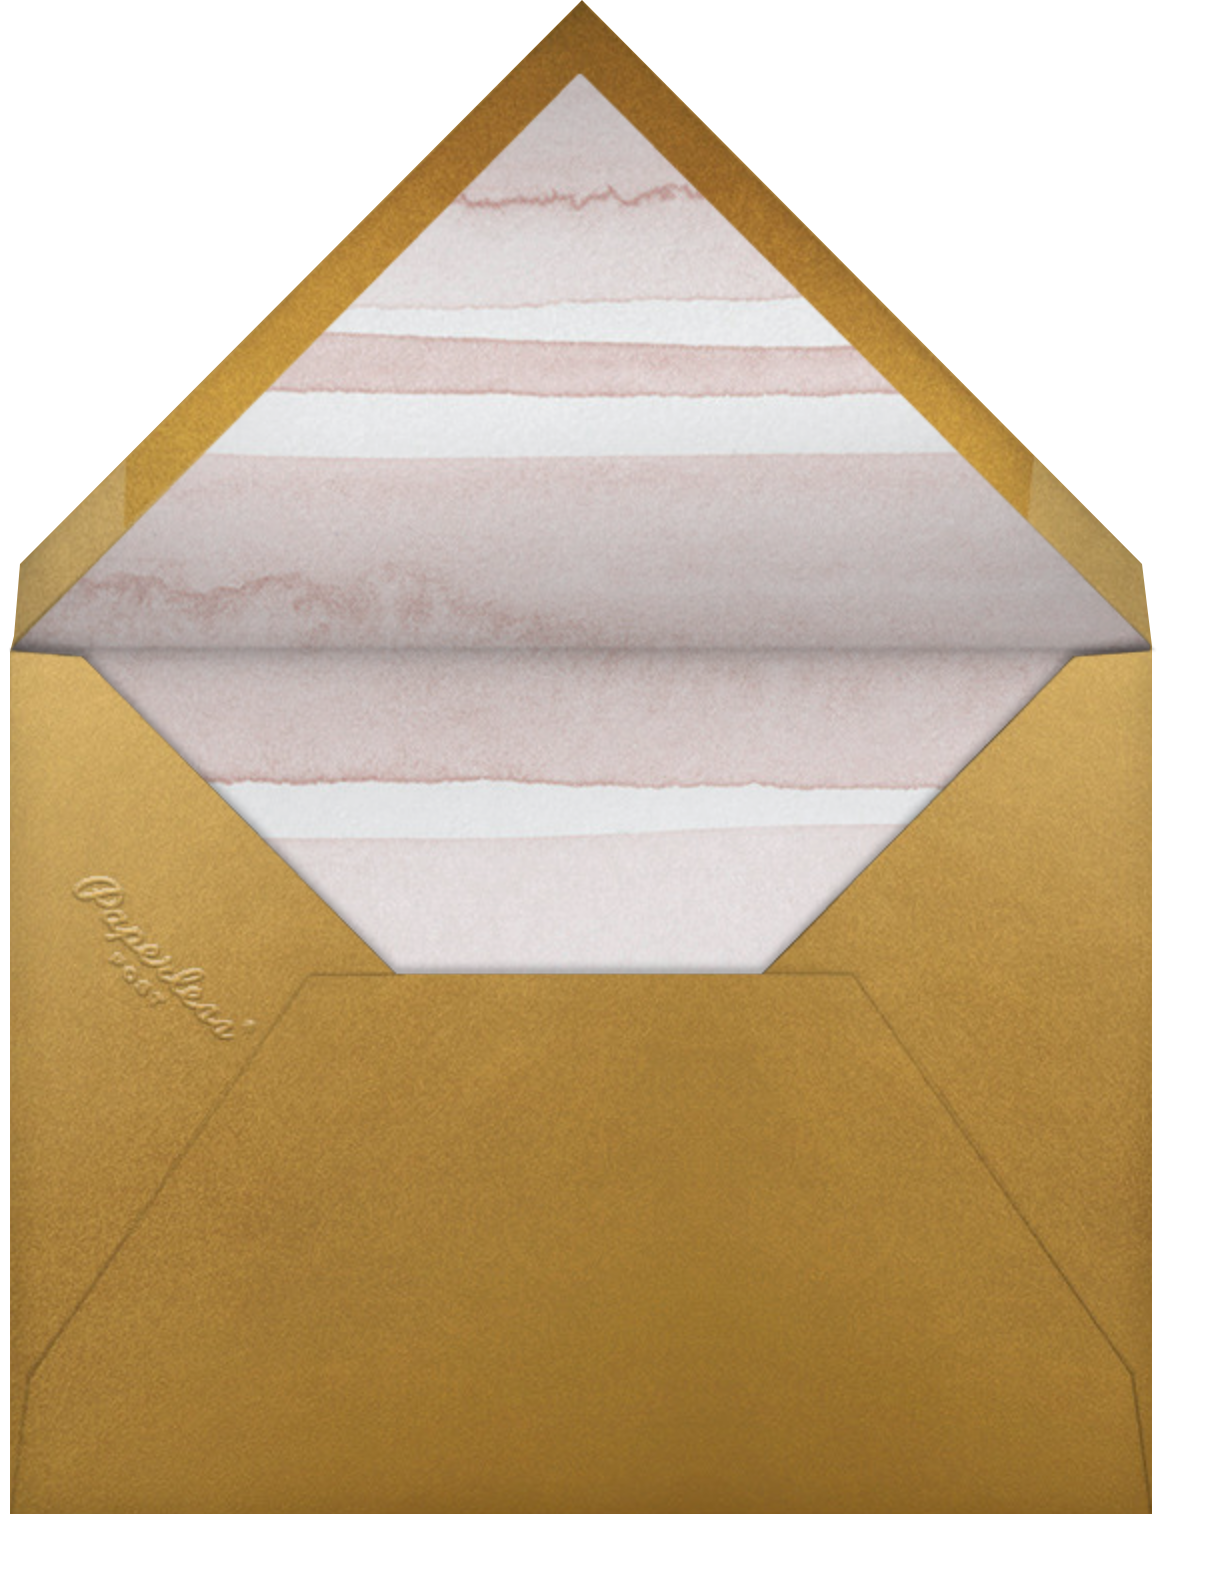 Amathole (Invitation) - Paperless Post - All - envelope back